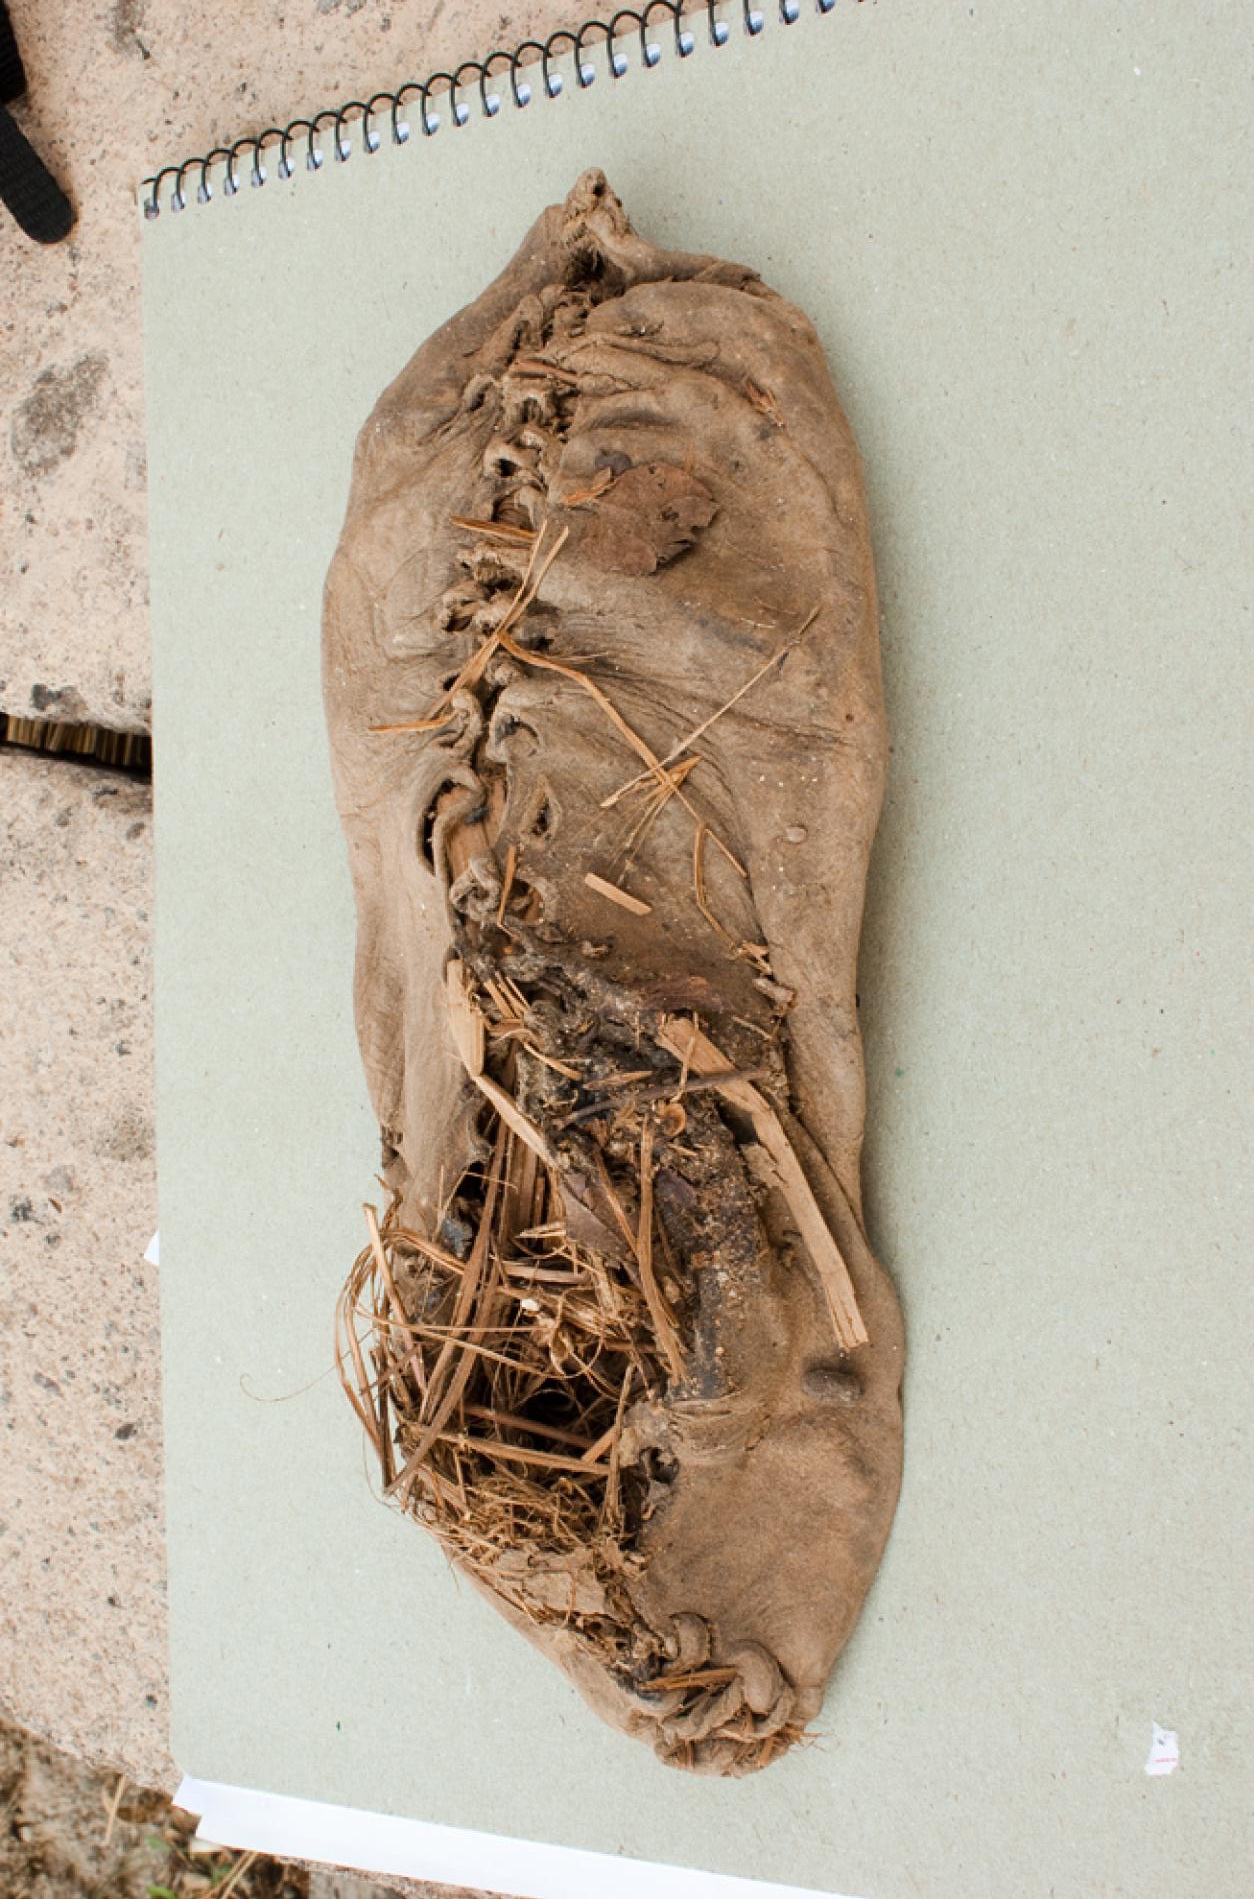 The world's oldest known leather shoe (pictured) has been found in an Armenian cave date back to 5,500 years, archaeologists say. (source:  National Geographic )